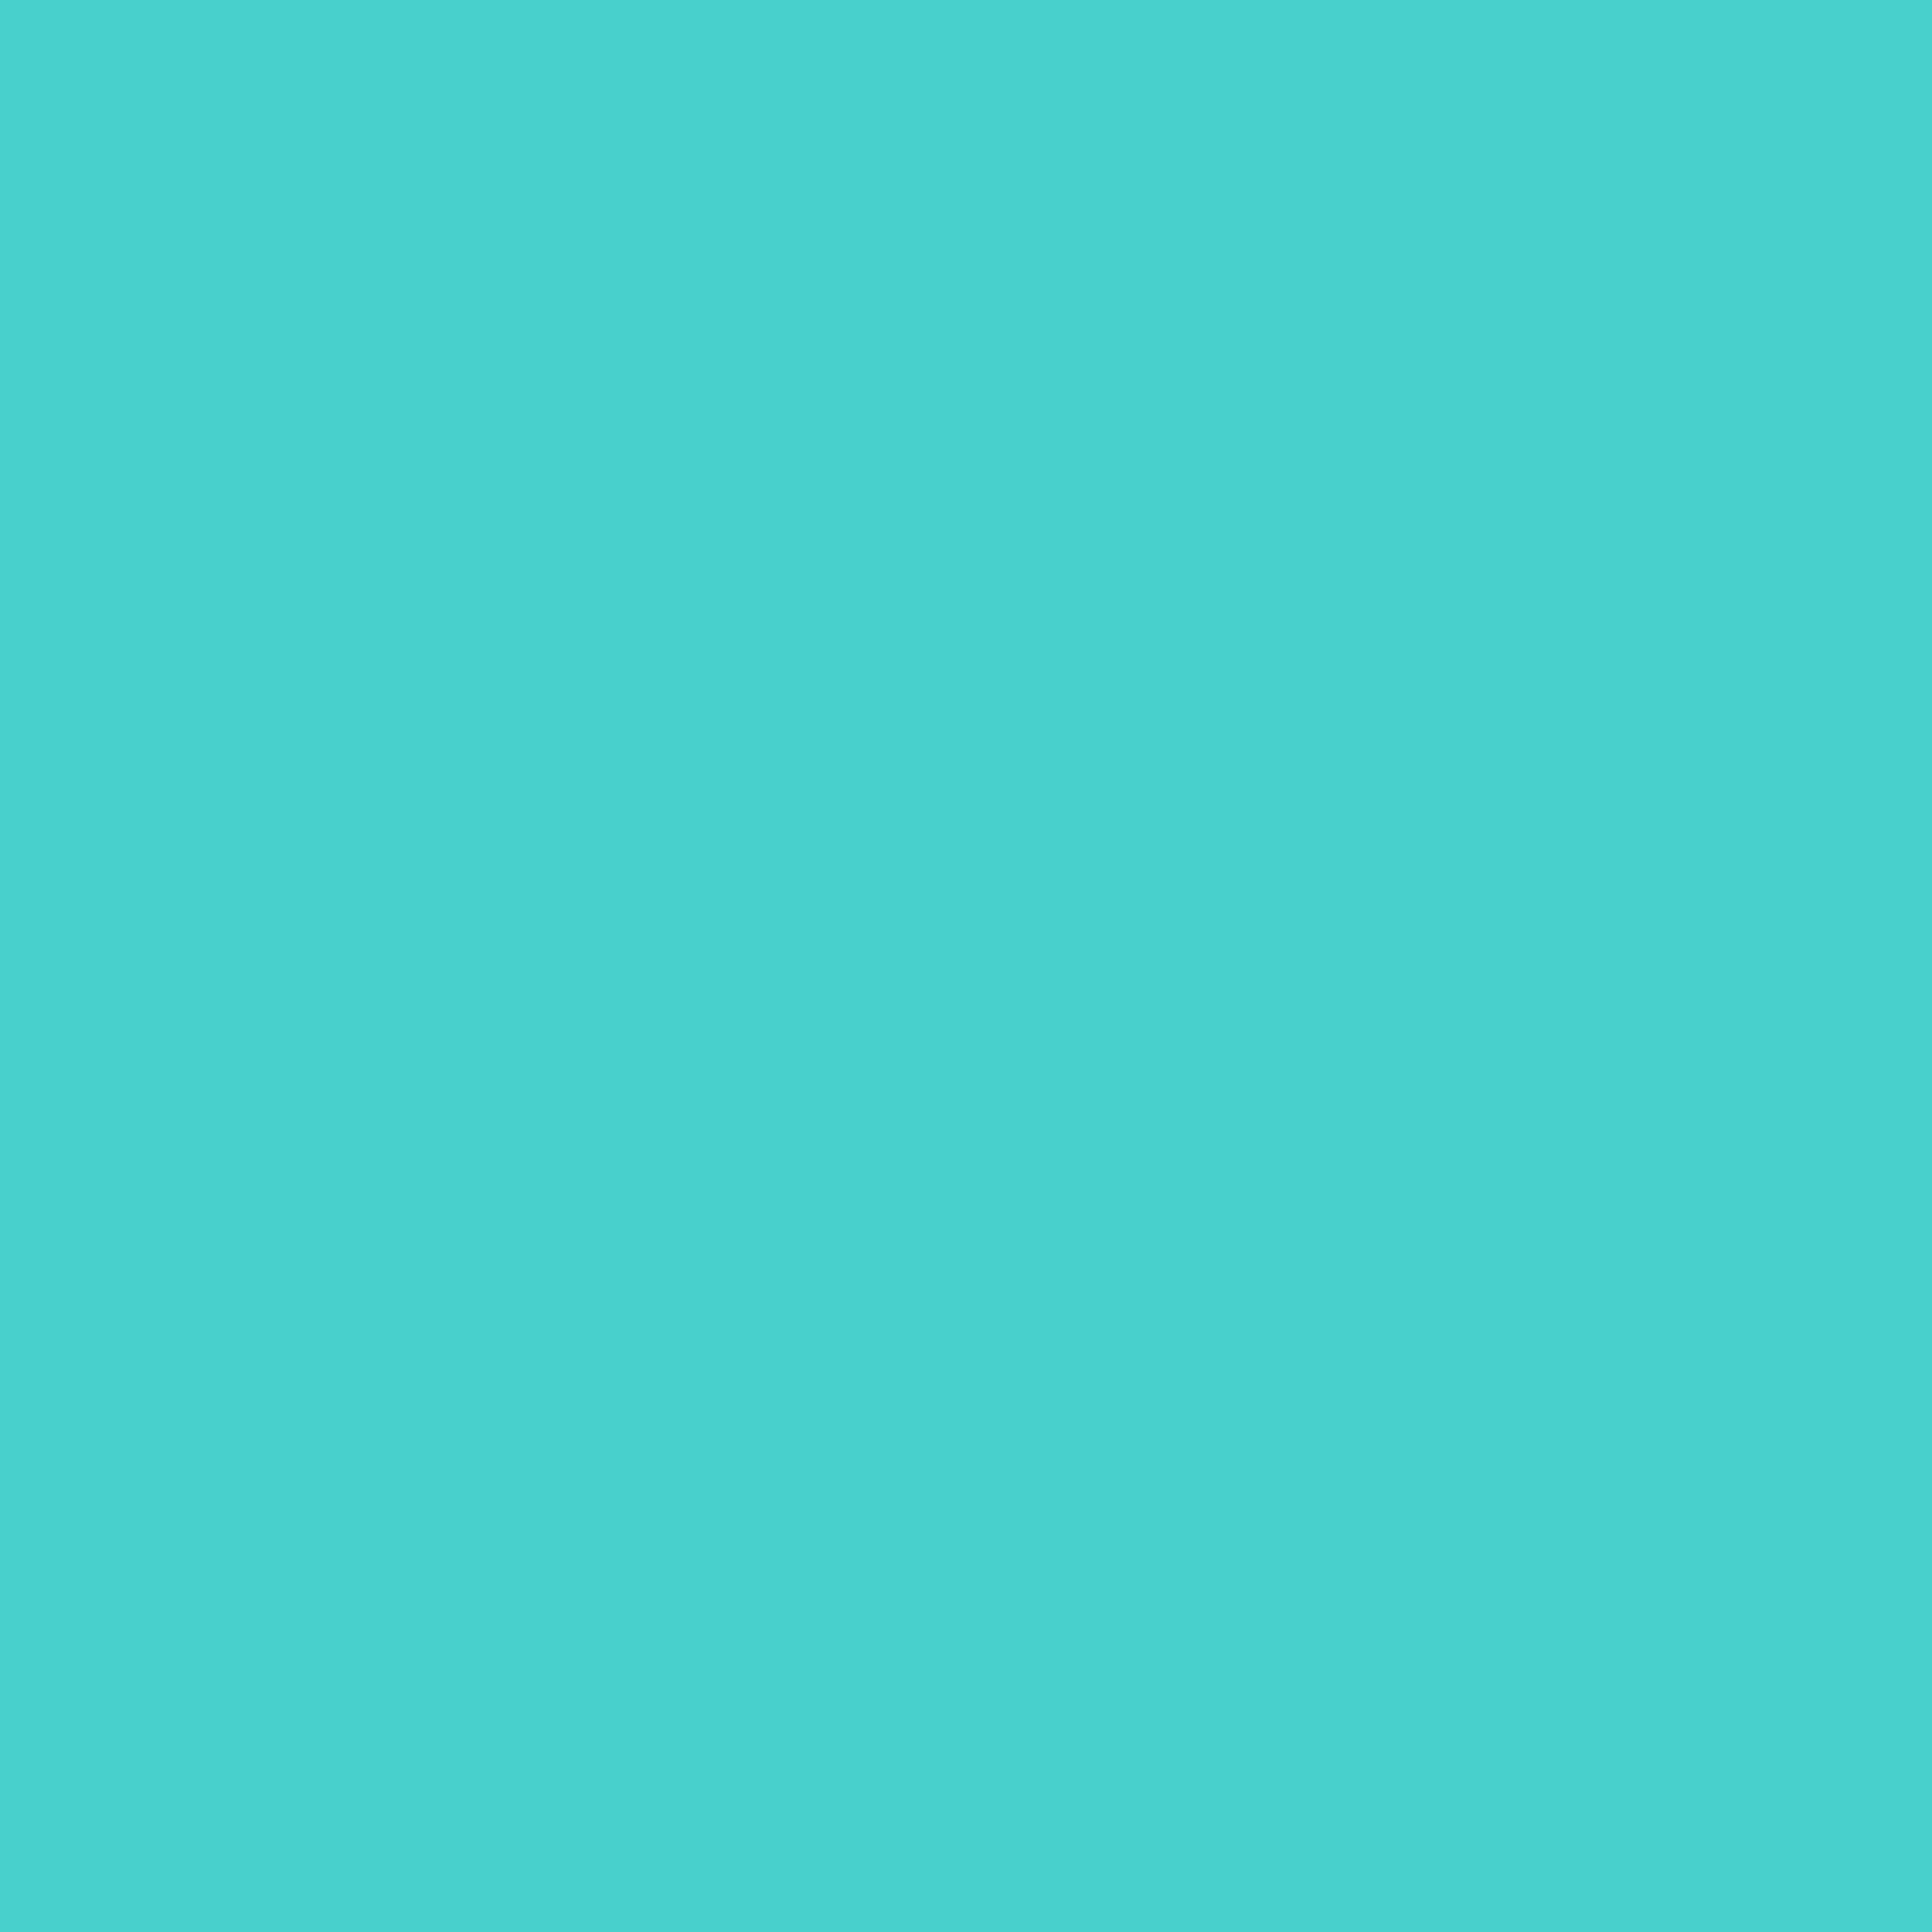 2048x2048 Medium Turquoise Solid Color Background